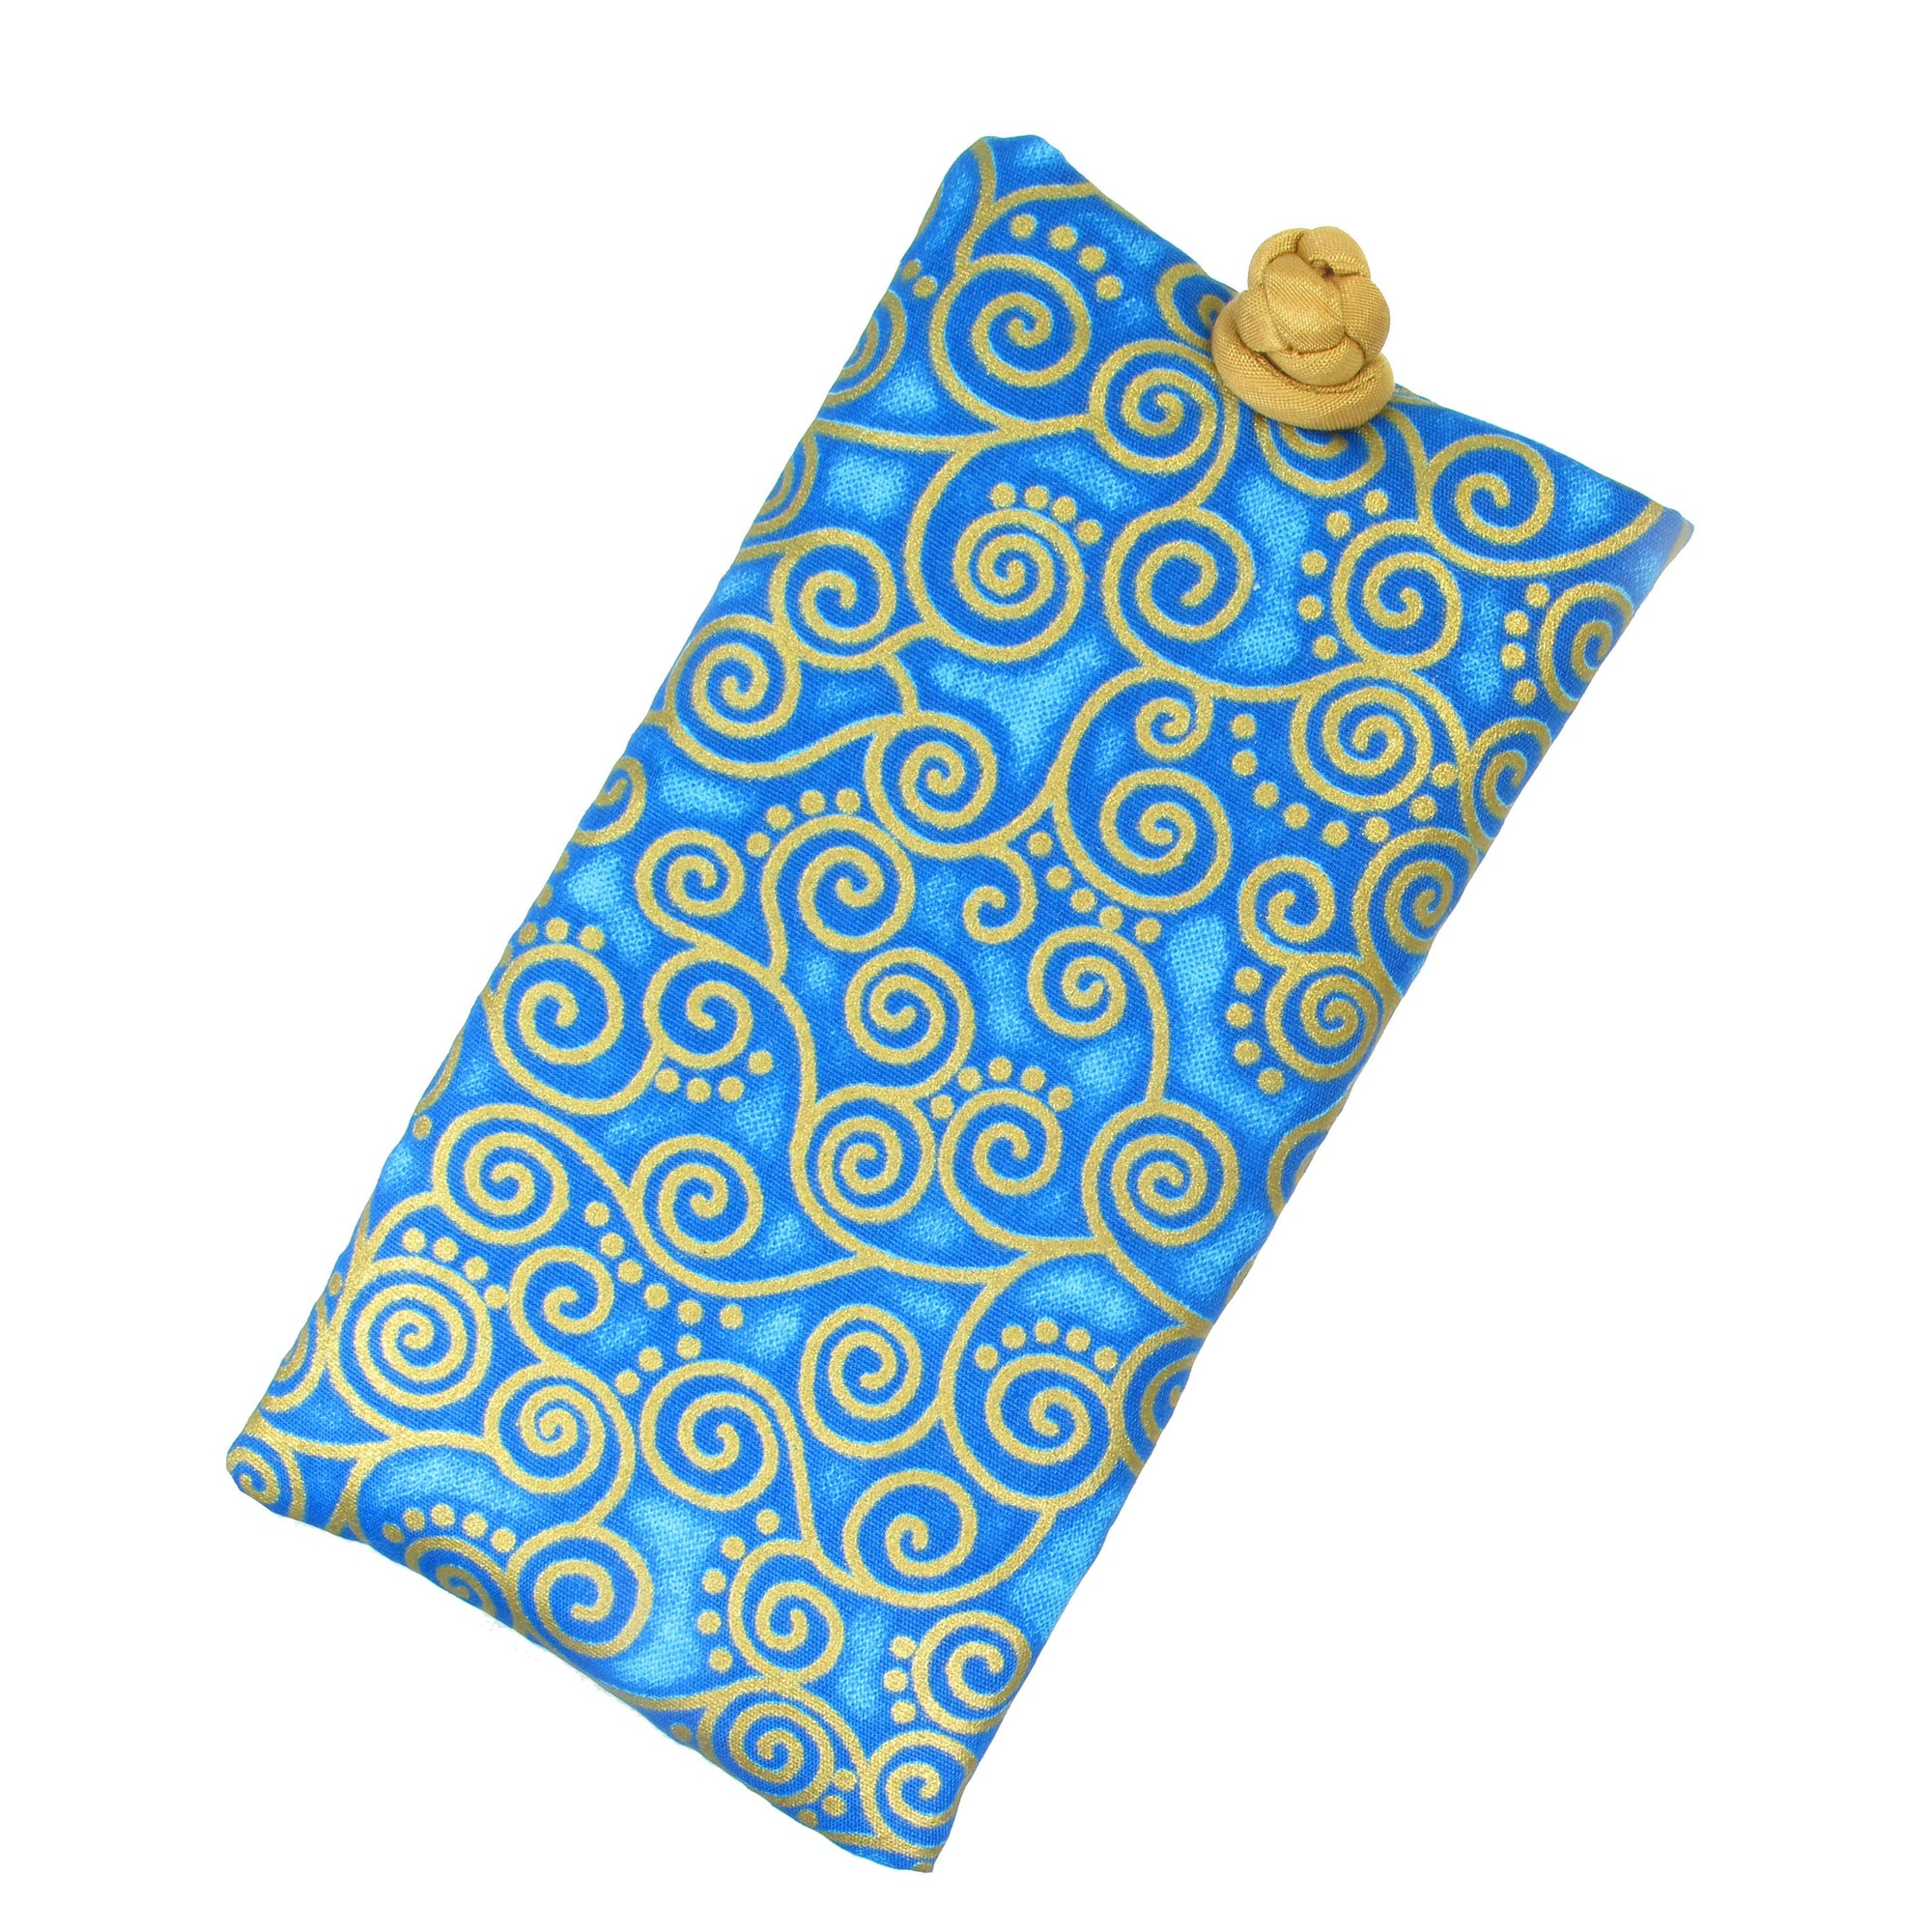 Cotton Soft Eyeglass Case, Turquoise